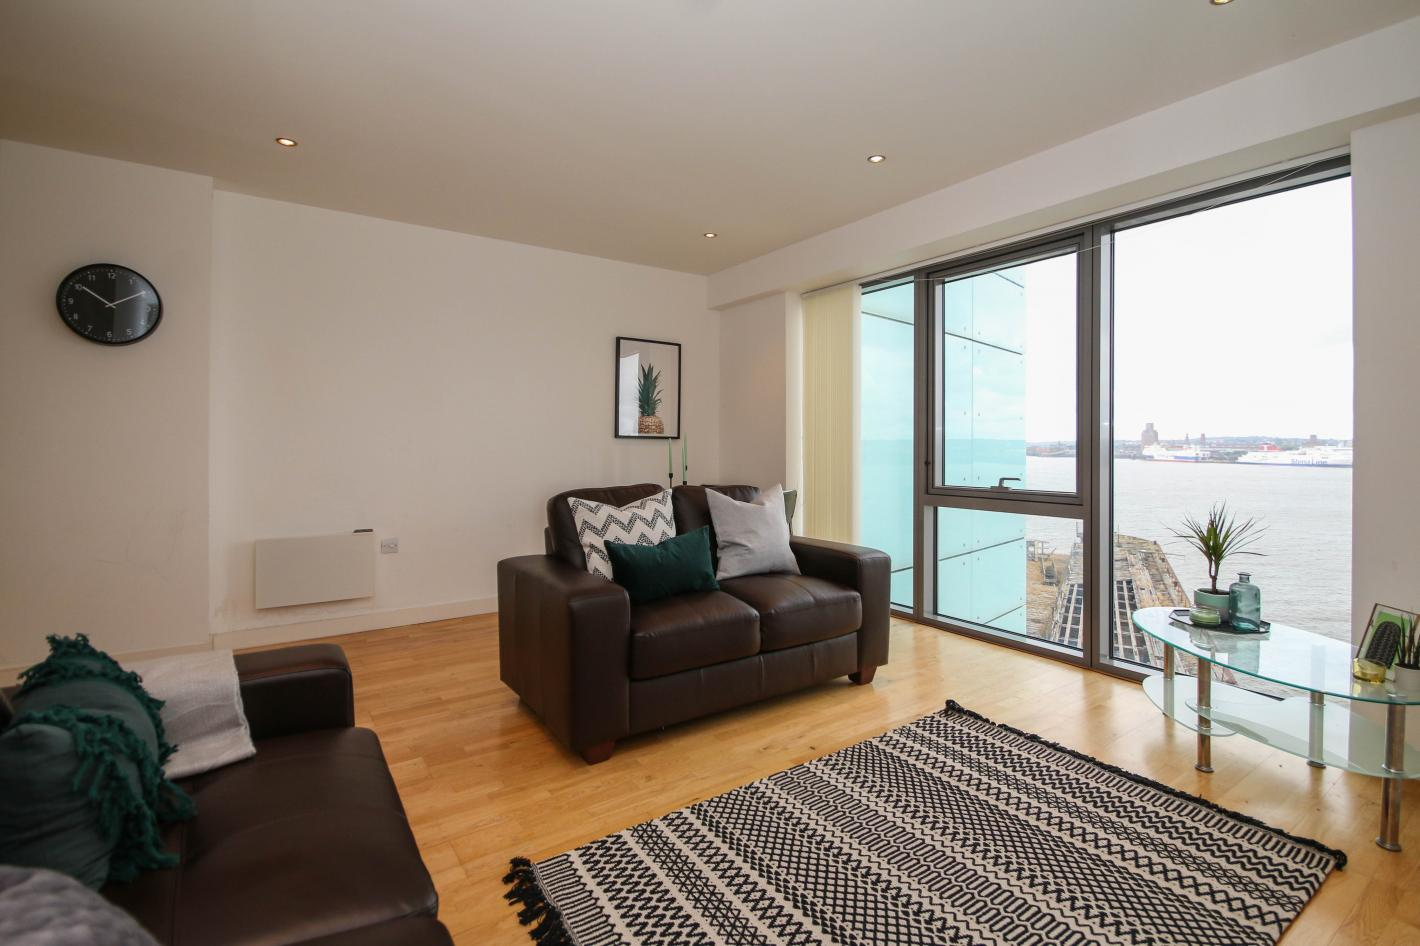 living room, triple window, 1 2 seater brown leather sofa, 1 3 seater brown leather sofa, laminate flooring